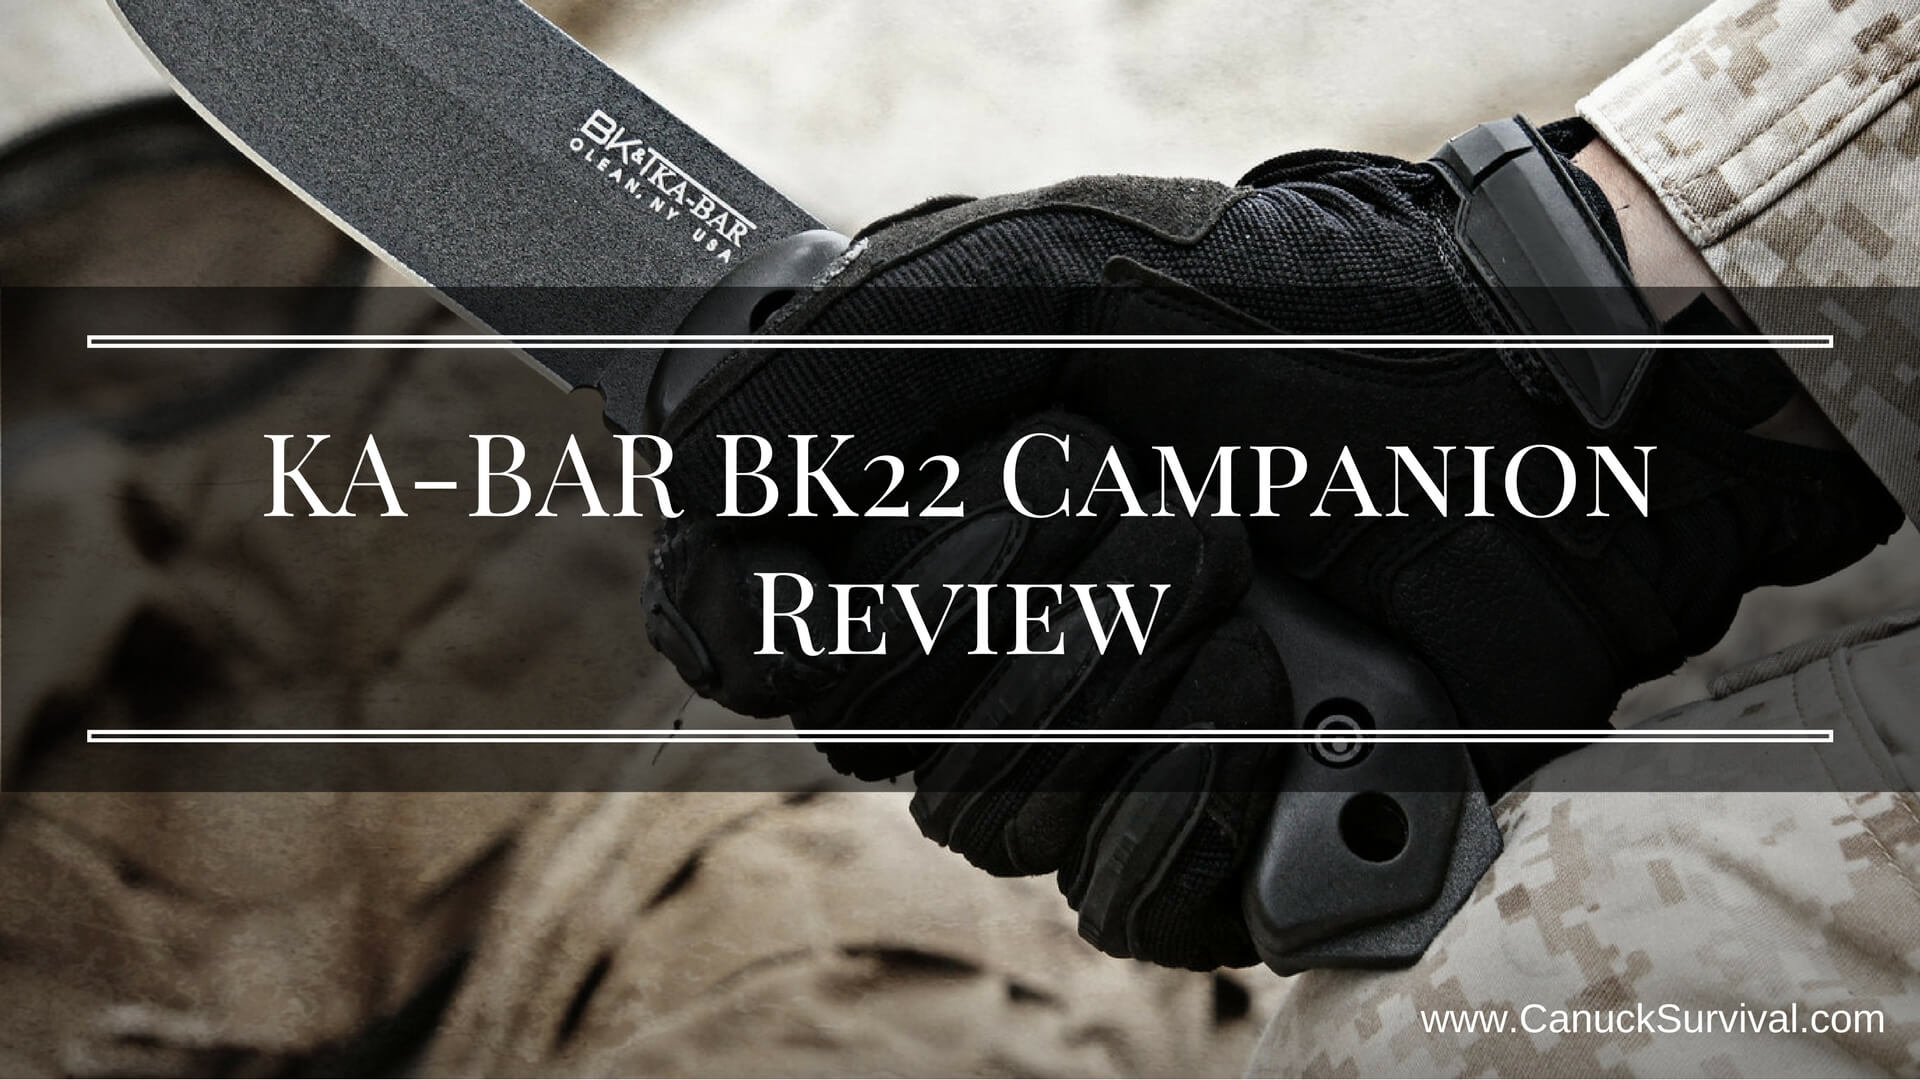 KA-BAR BK22 Campanion Review